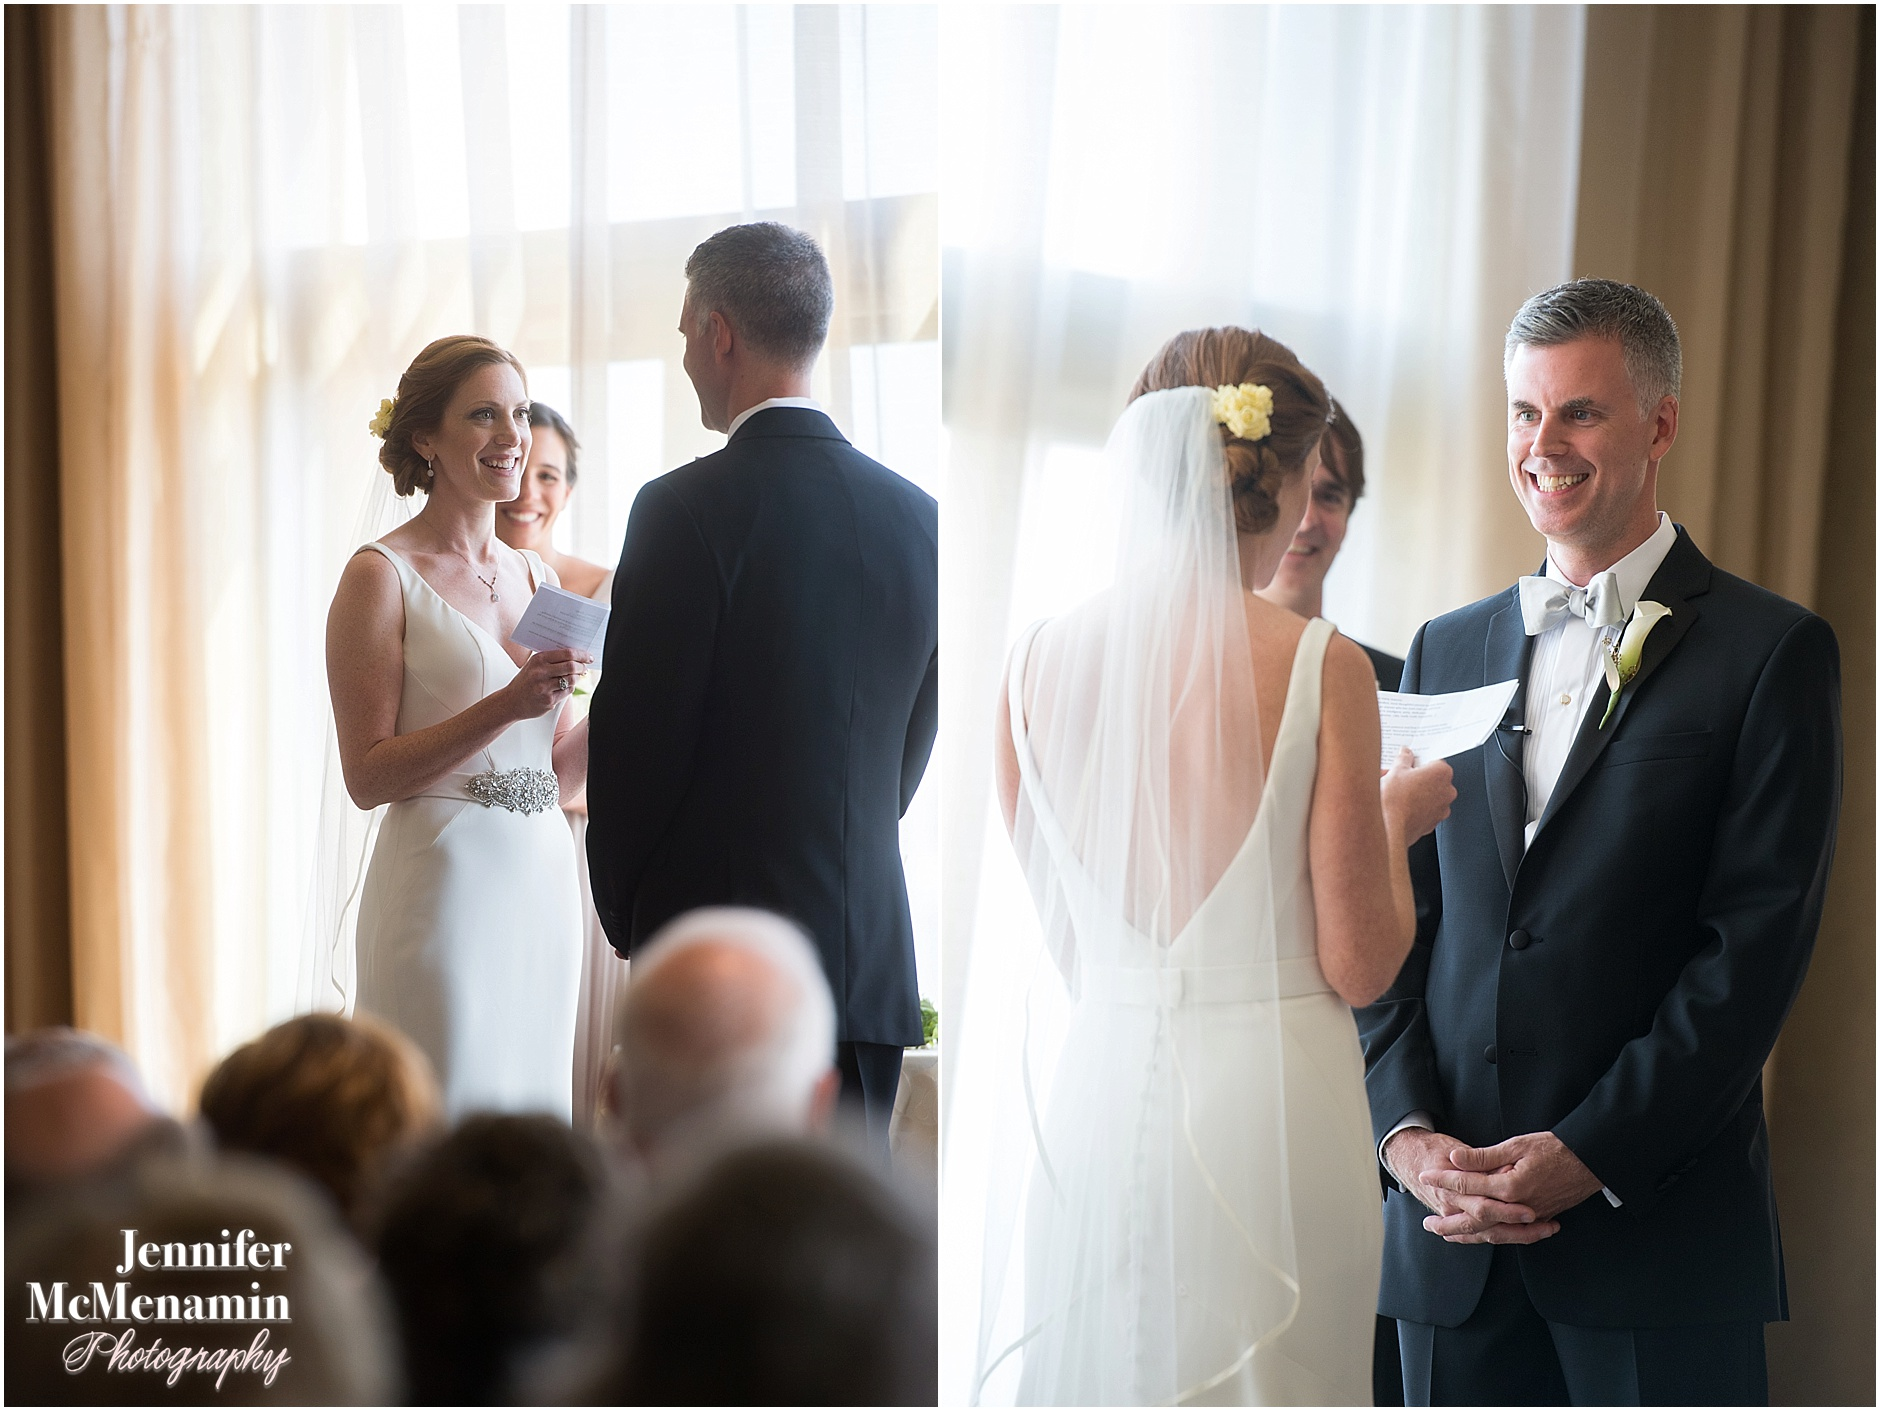 030-Four-Seasons-Baltimore-wedding-Jennifer-McMenamin-Photography